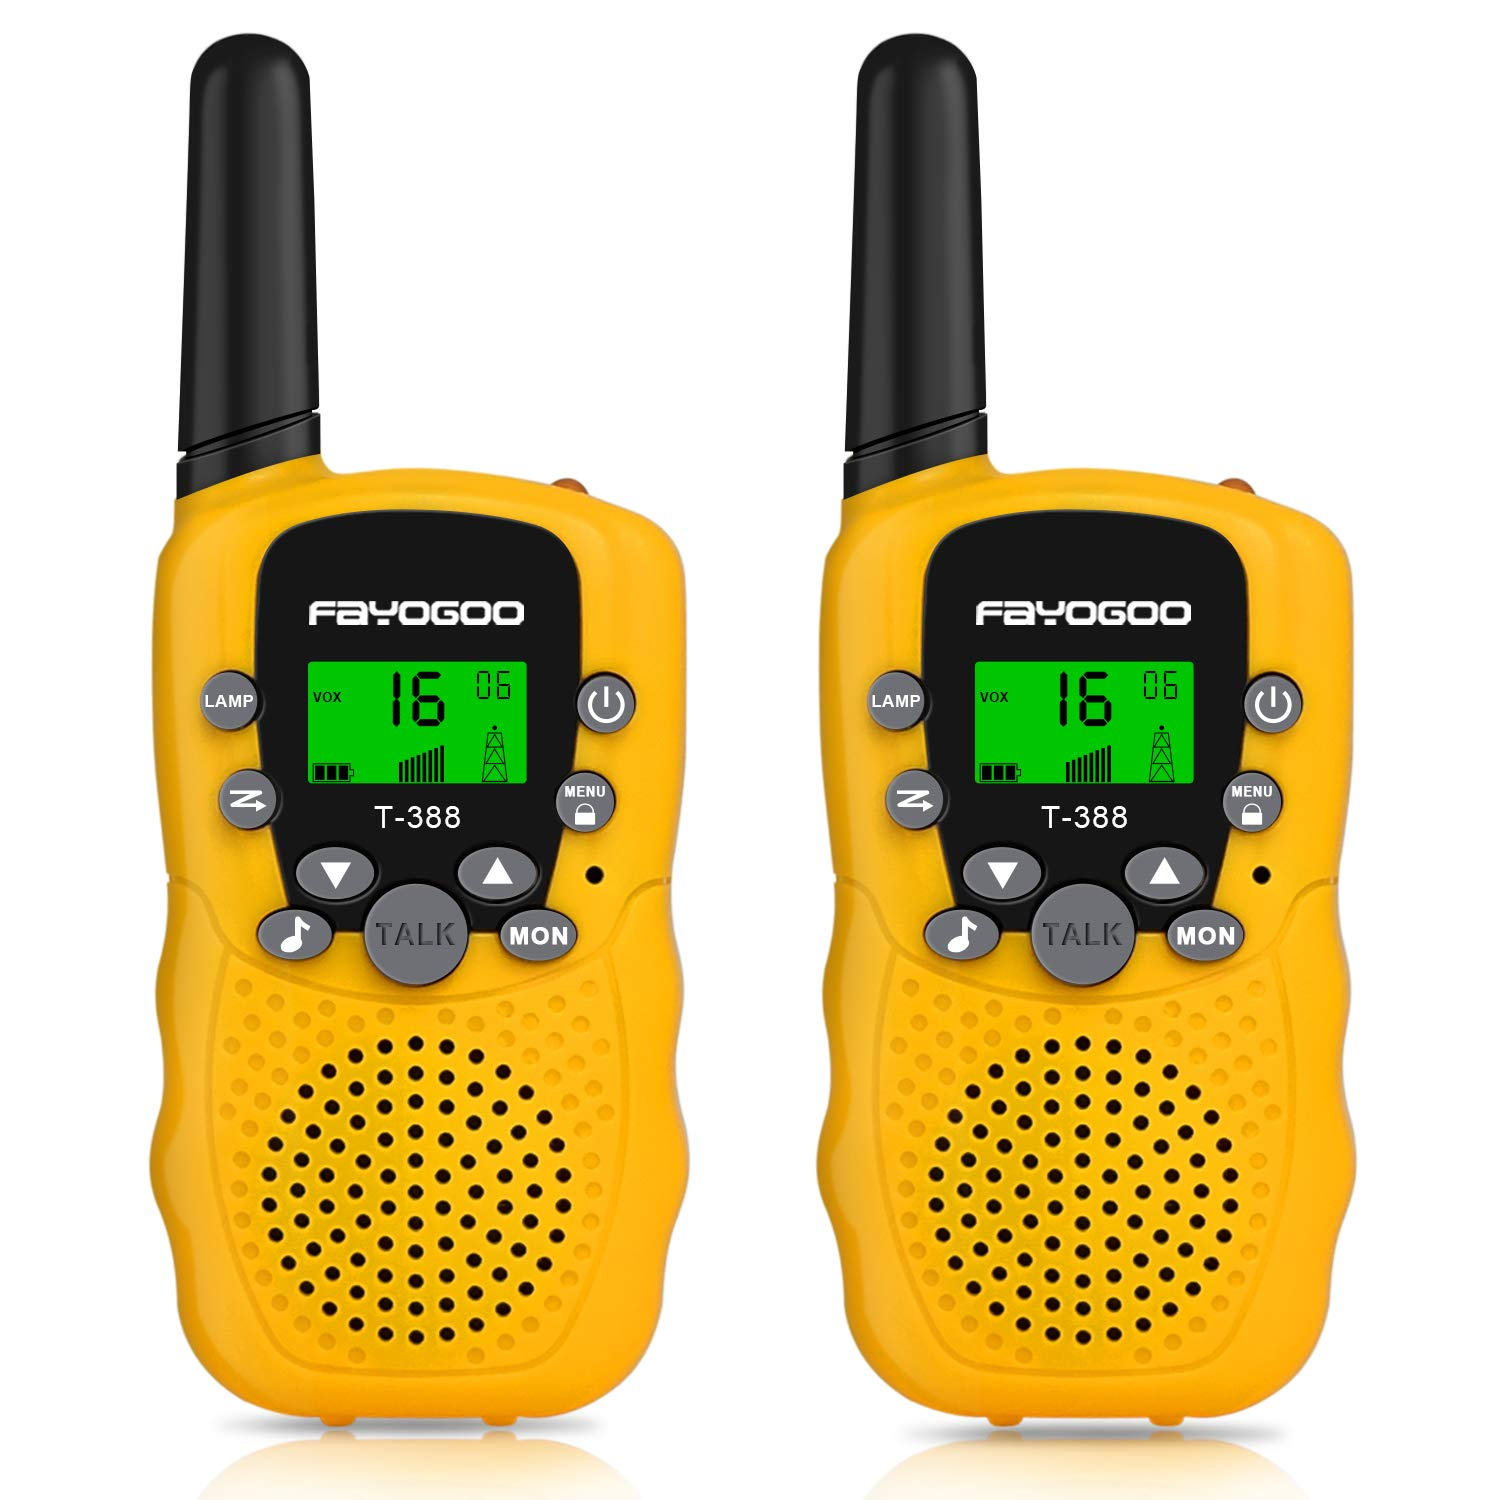 FAYOGOO Kids Walkie Talkies, 22-Channel FRS/GMRS Radio, 4-Mile Range Two Way Radios with Flashlight and LCD Screen, Boys Girls Gifts Toys, 2 Pack, Yellow by FAYOGOO